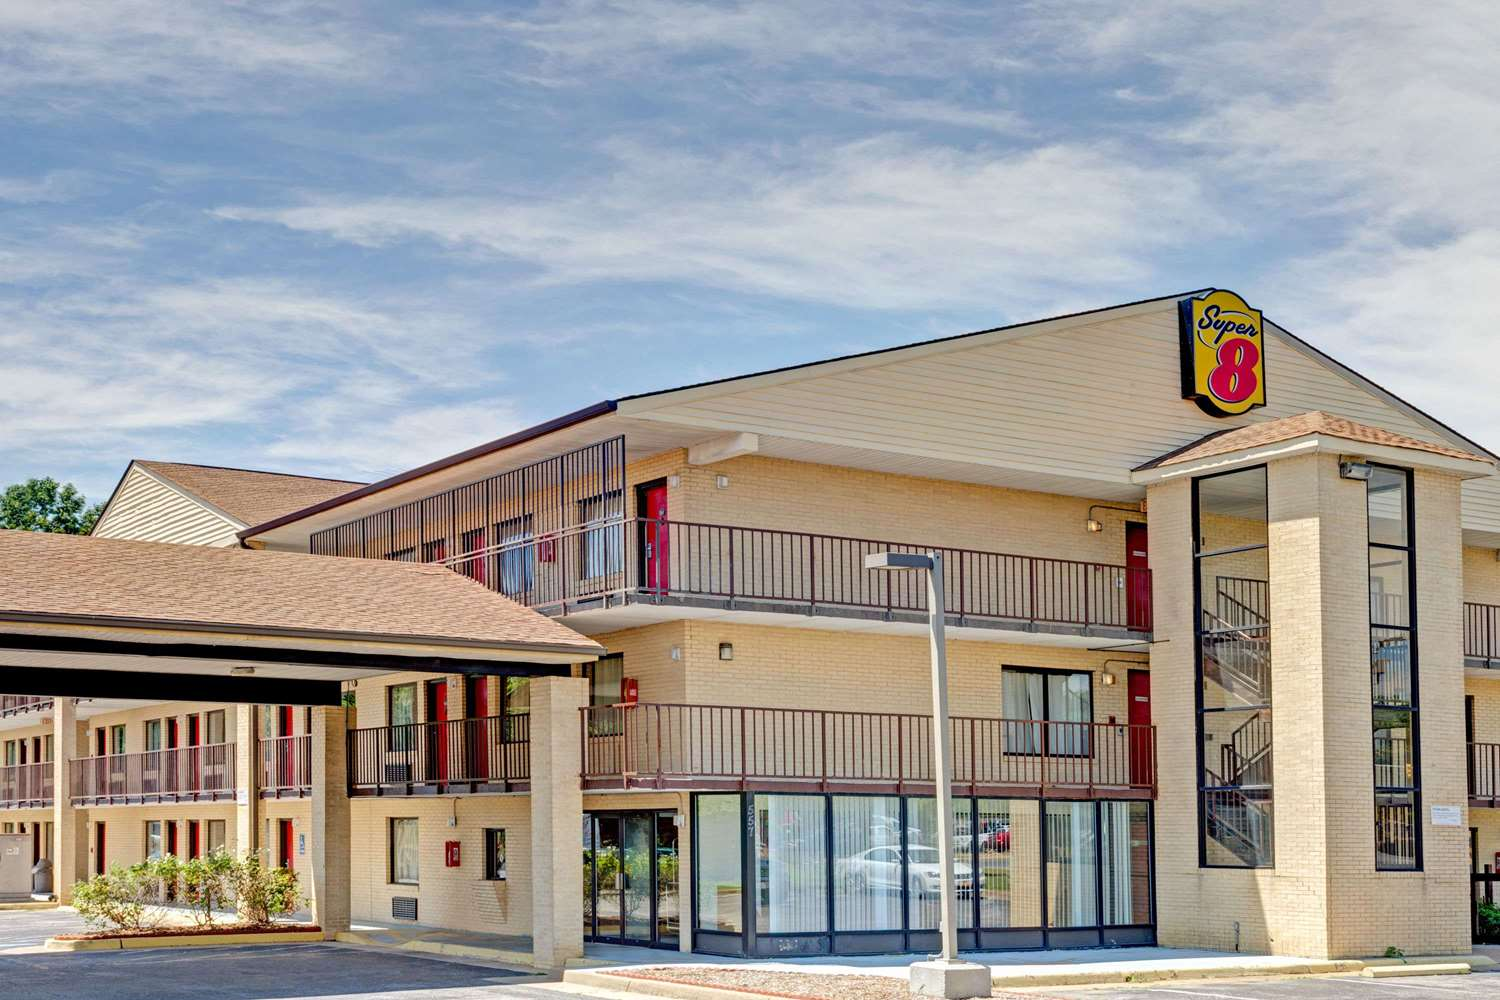 Welcome to the Super 8 Fredericksburg